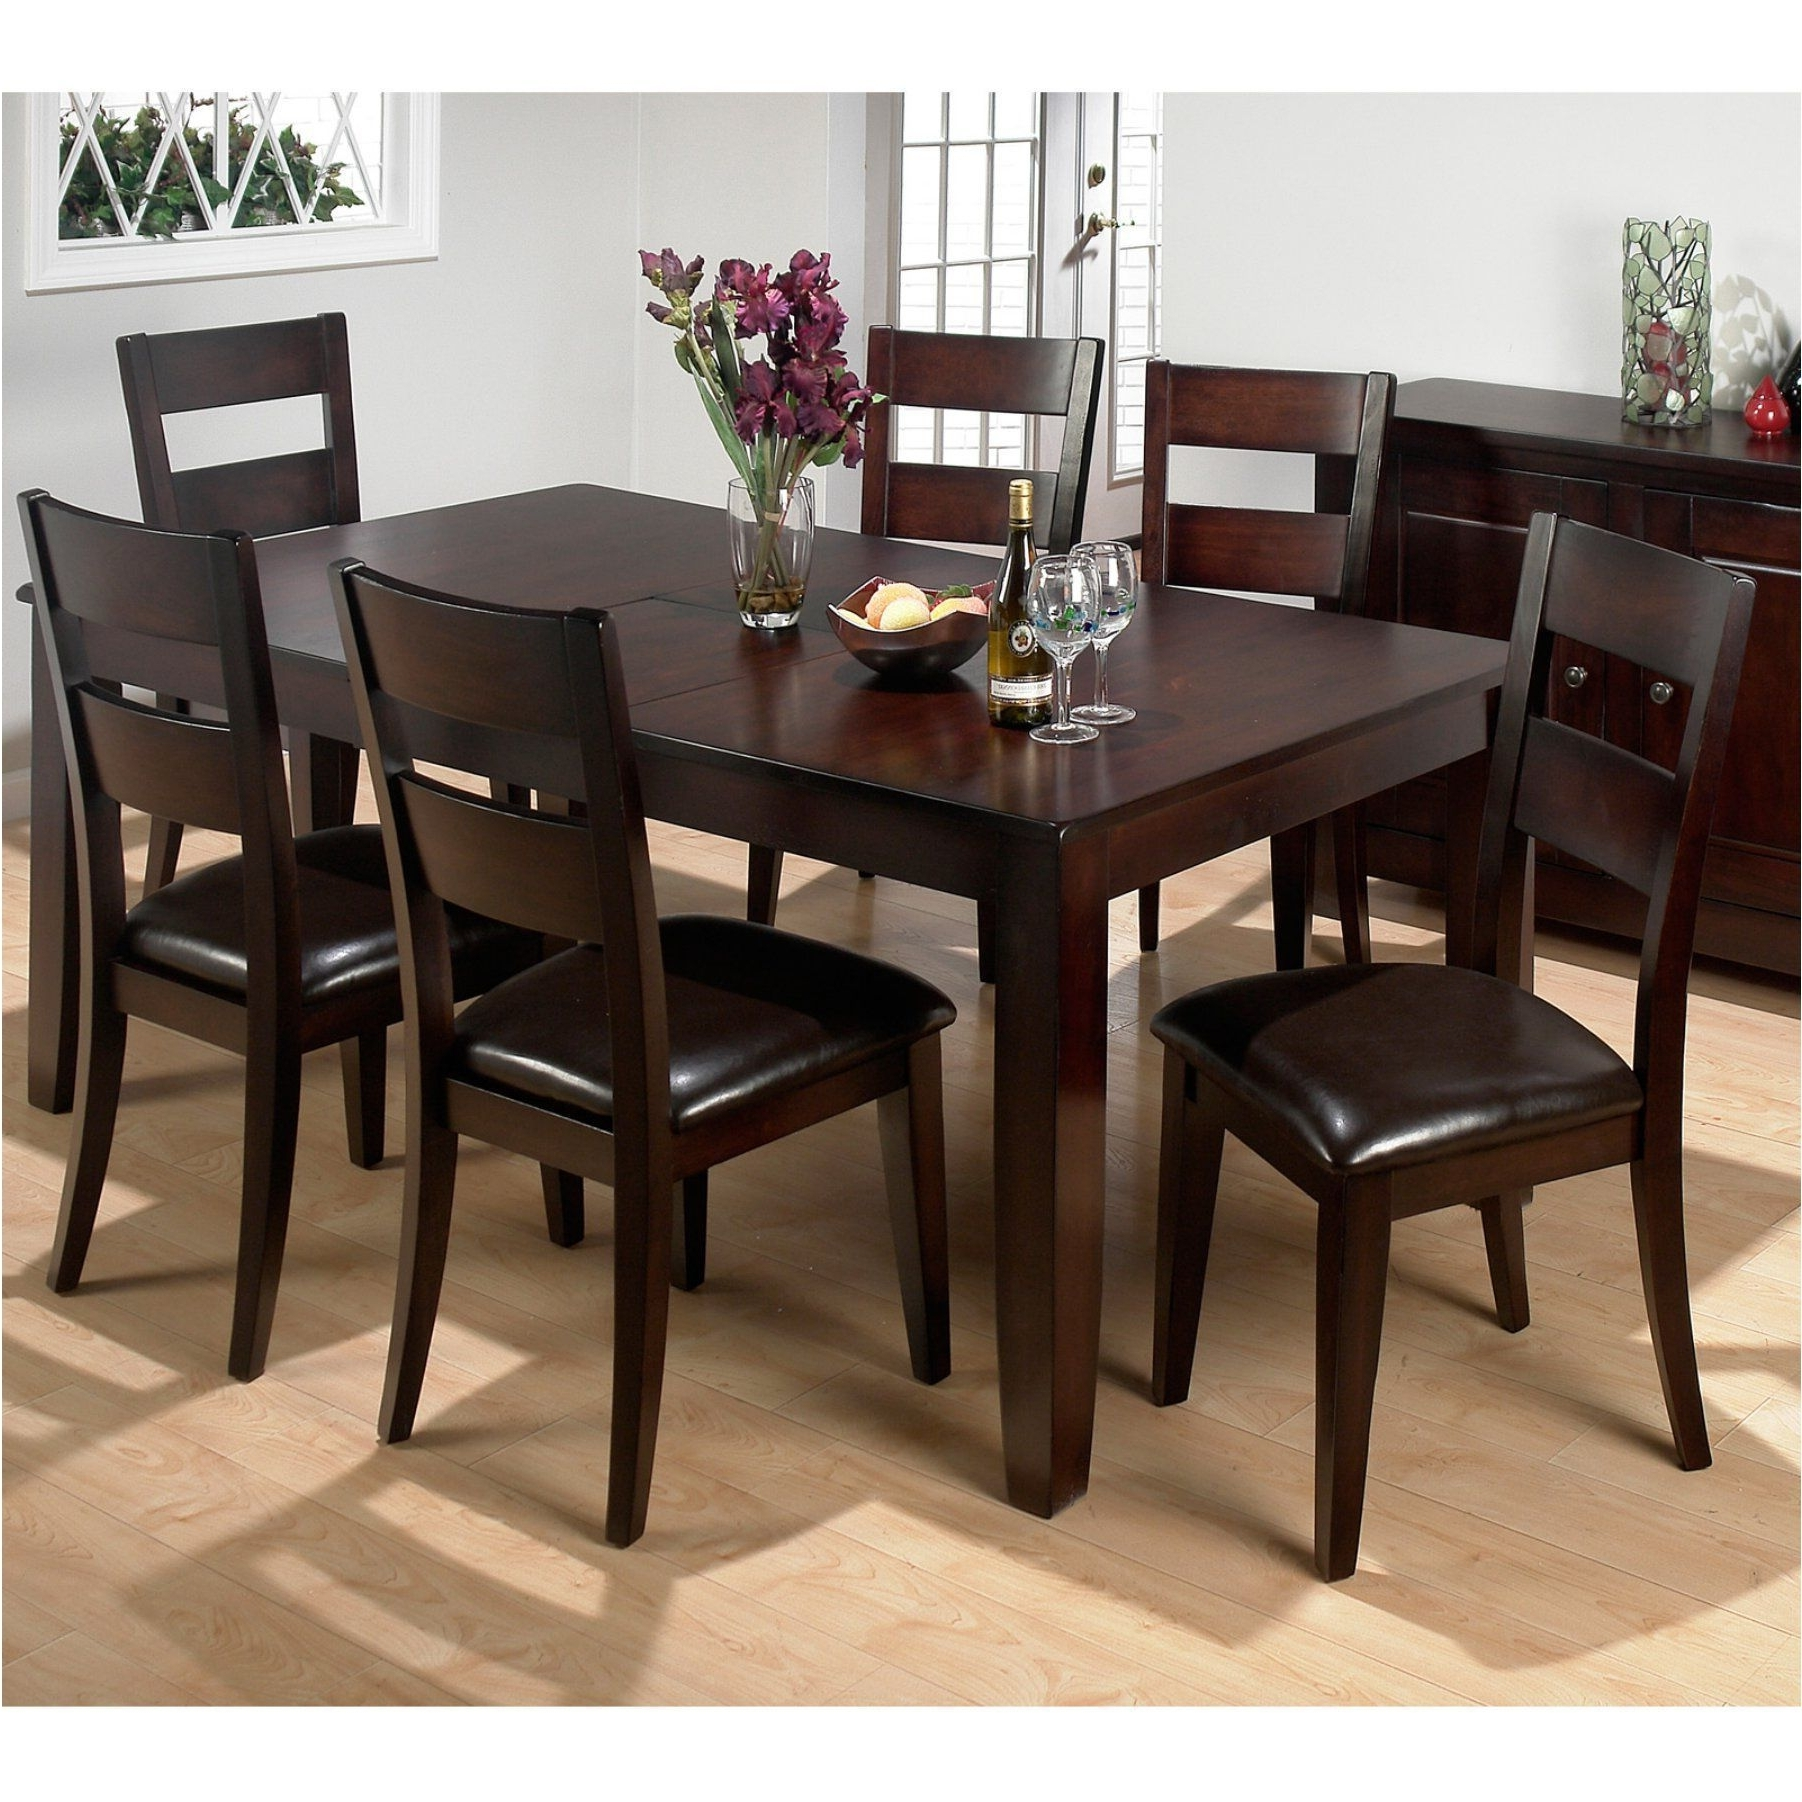 Preferred Breathtaking Hampshire Oak Dining Set Dining Furniture B – Cheap Throughout Cheap Dining Tables (View 24 of 25)